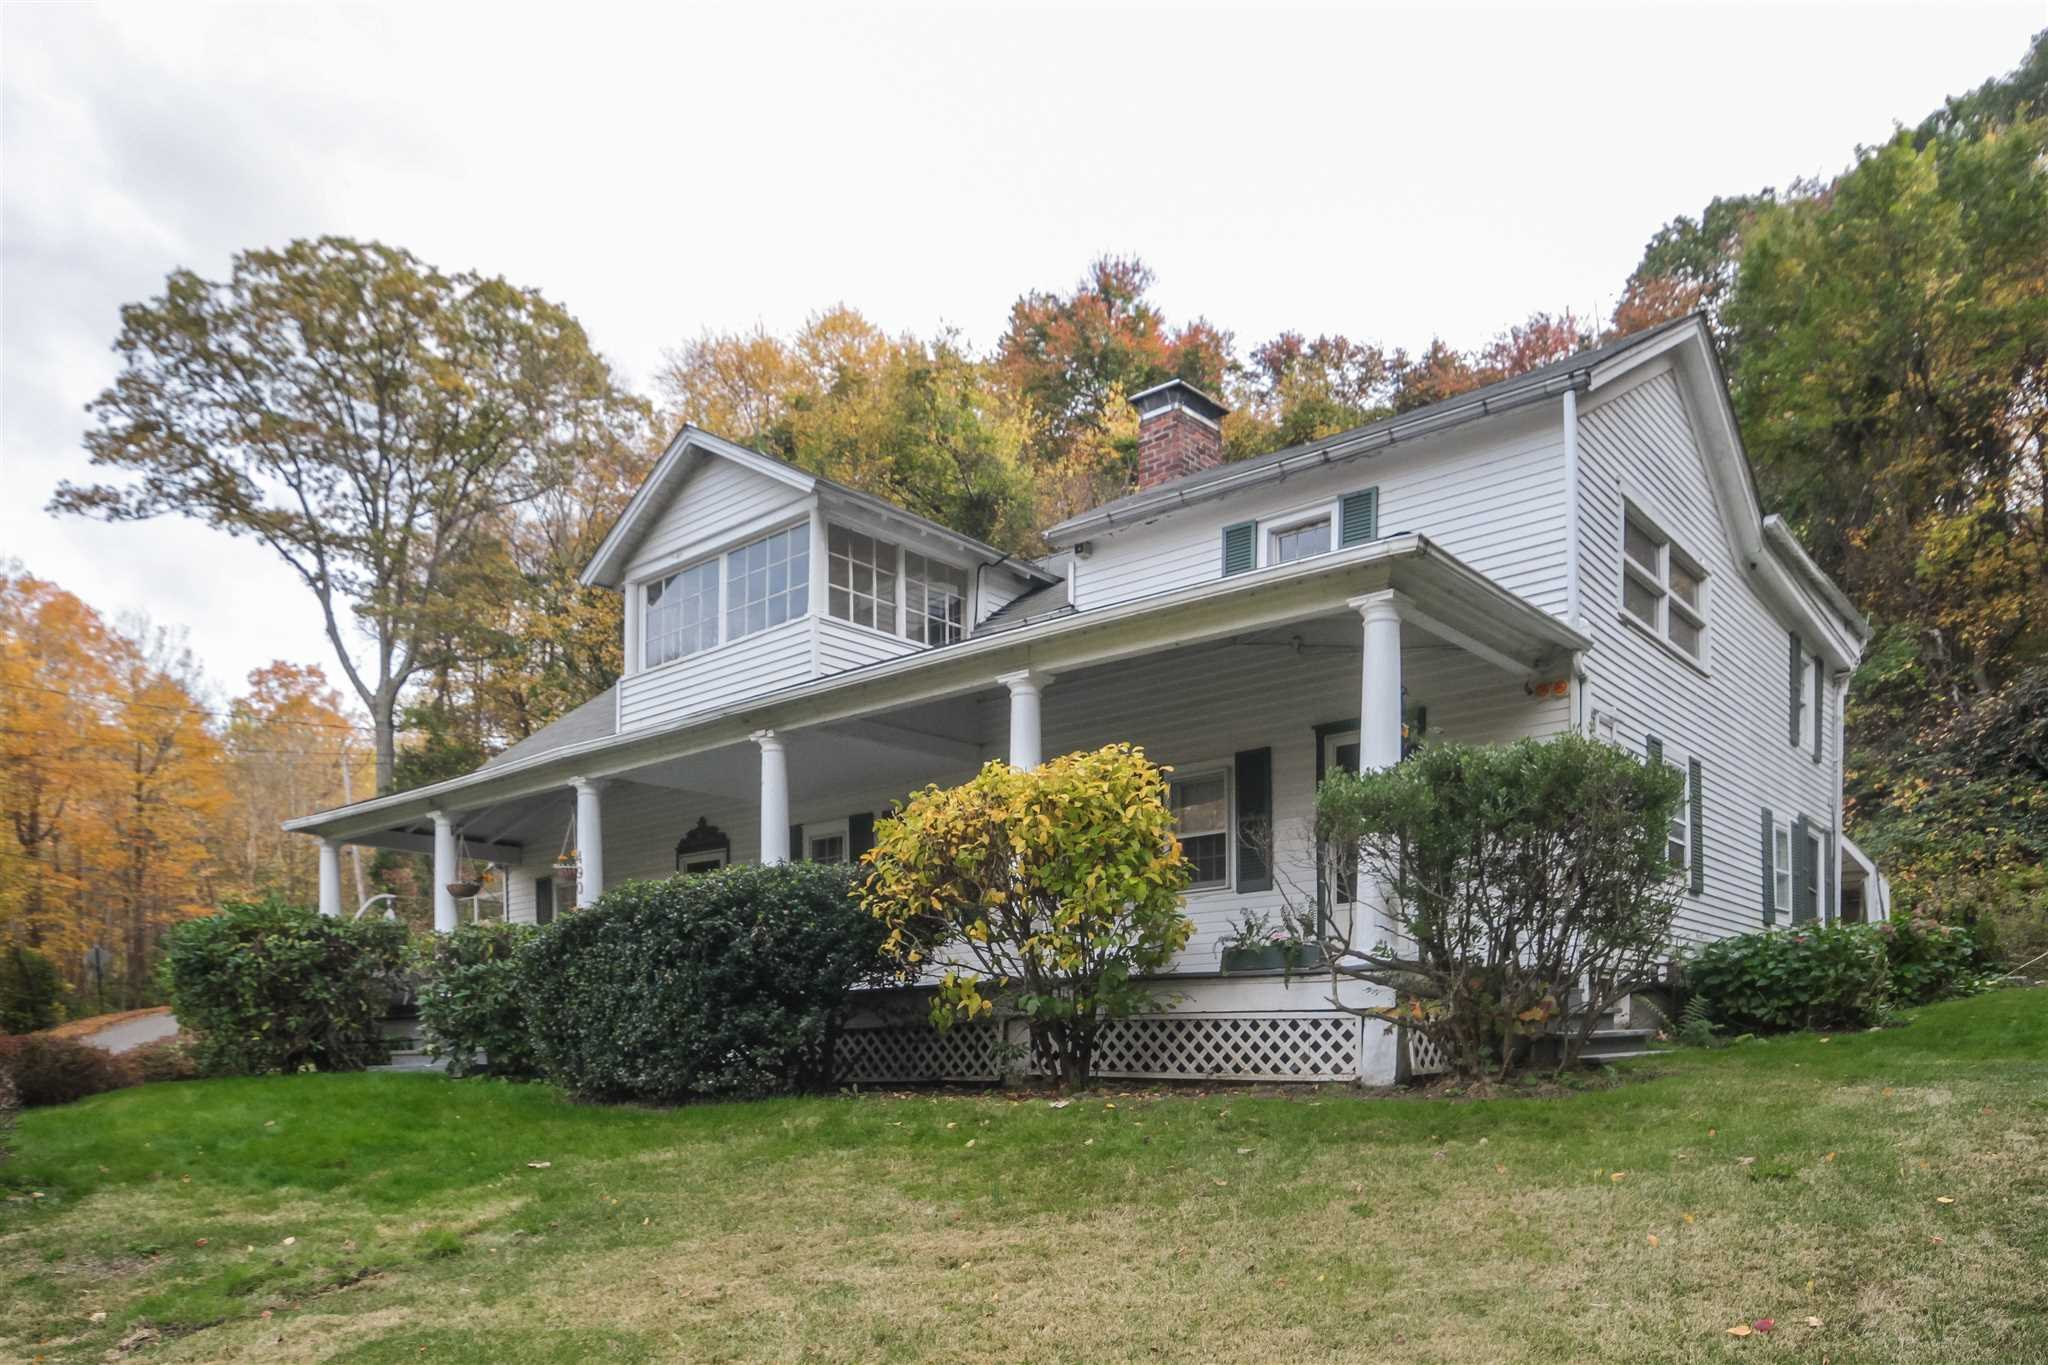 Single Family Home for Sale at 490 EDER Road 490 EDER Road East Fishkill, New York 12582 United States